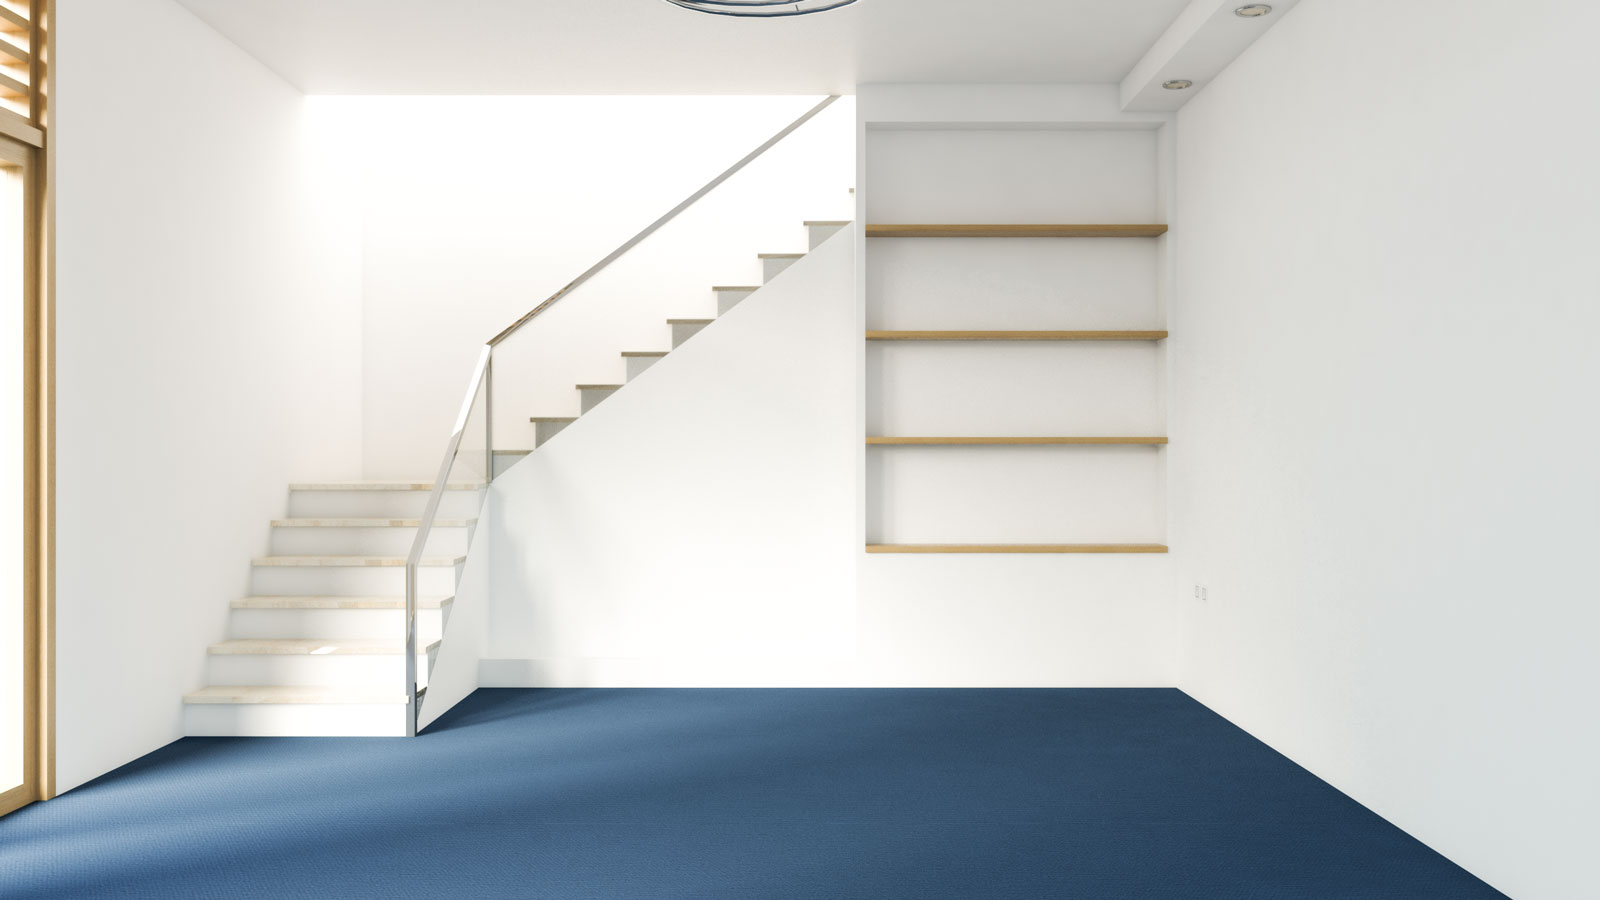 Navy blue carpet with white walls